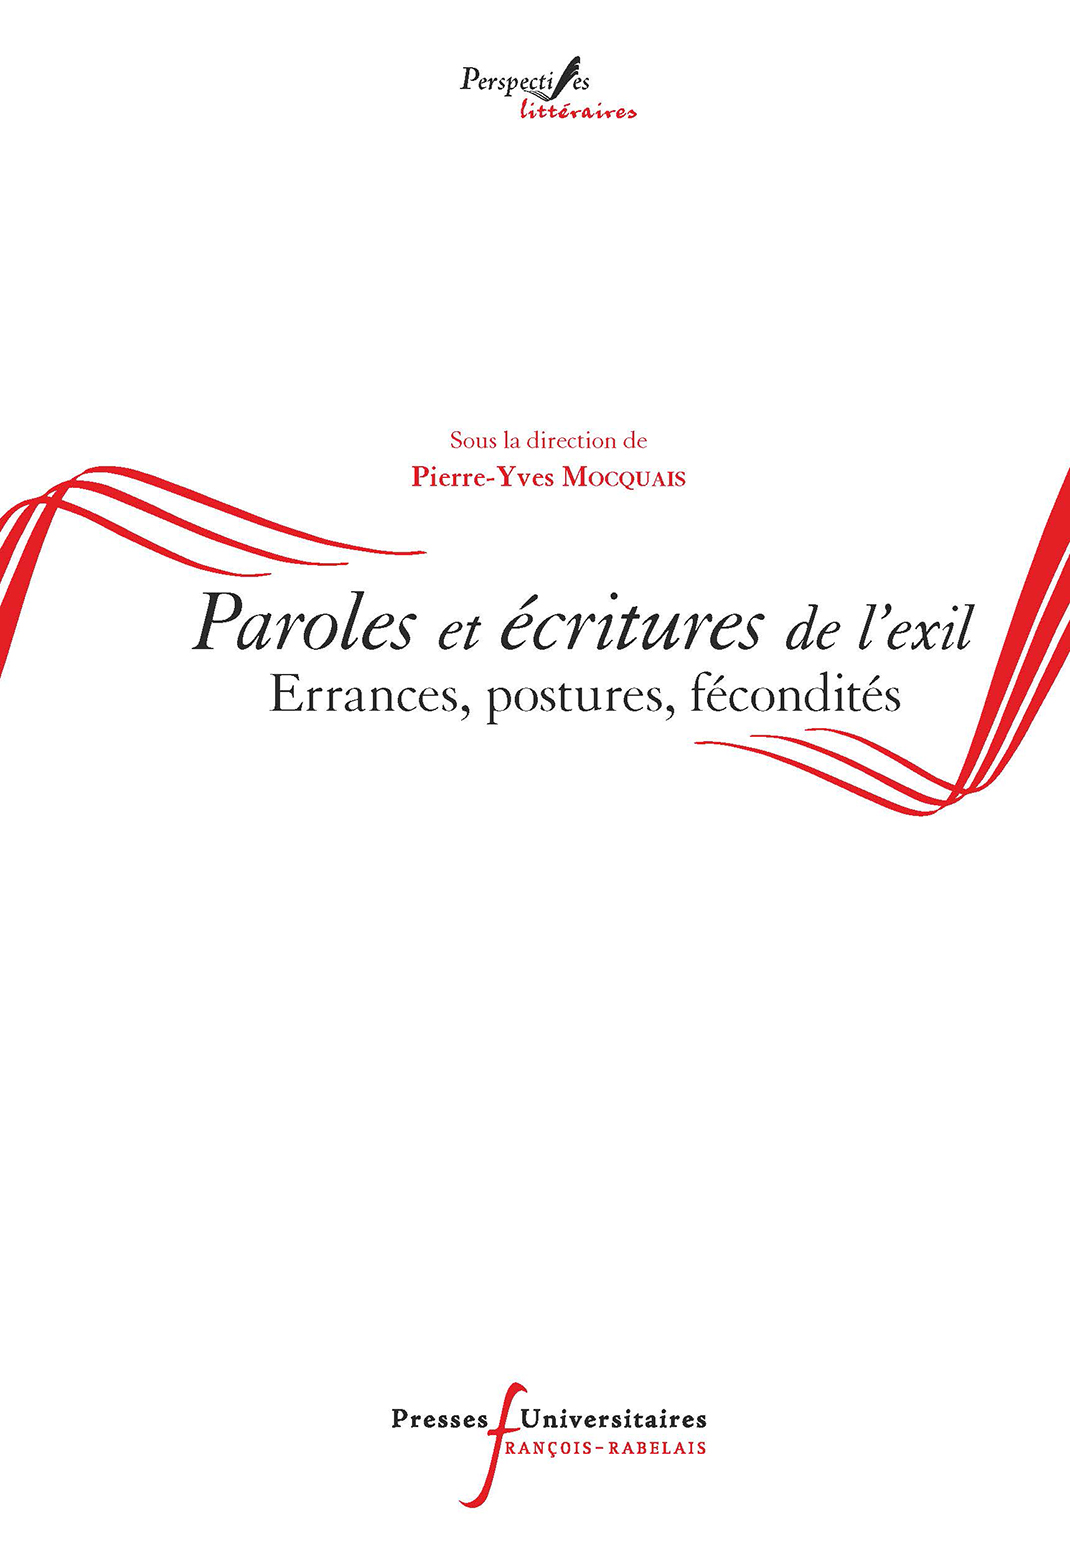 Paroles et écritures de l'exil